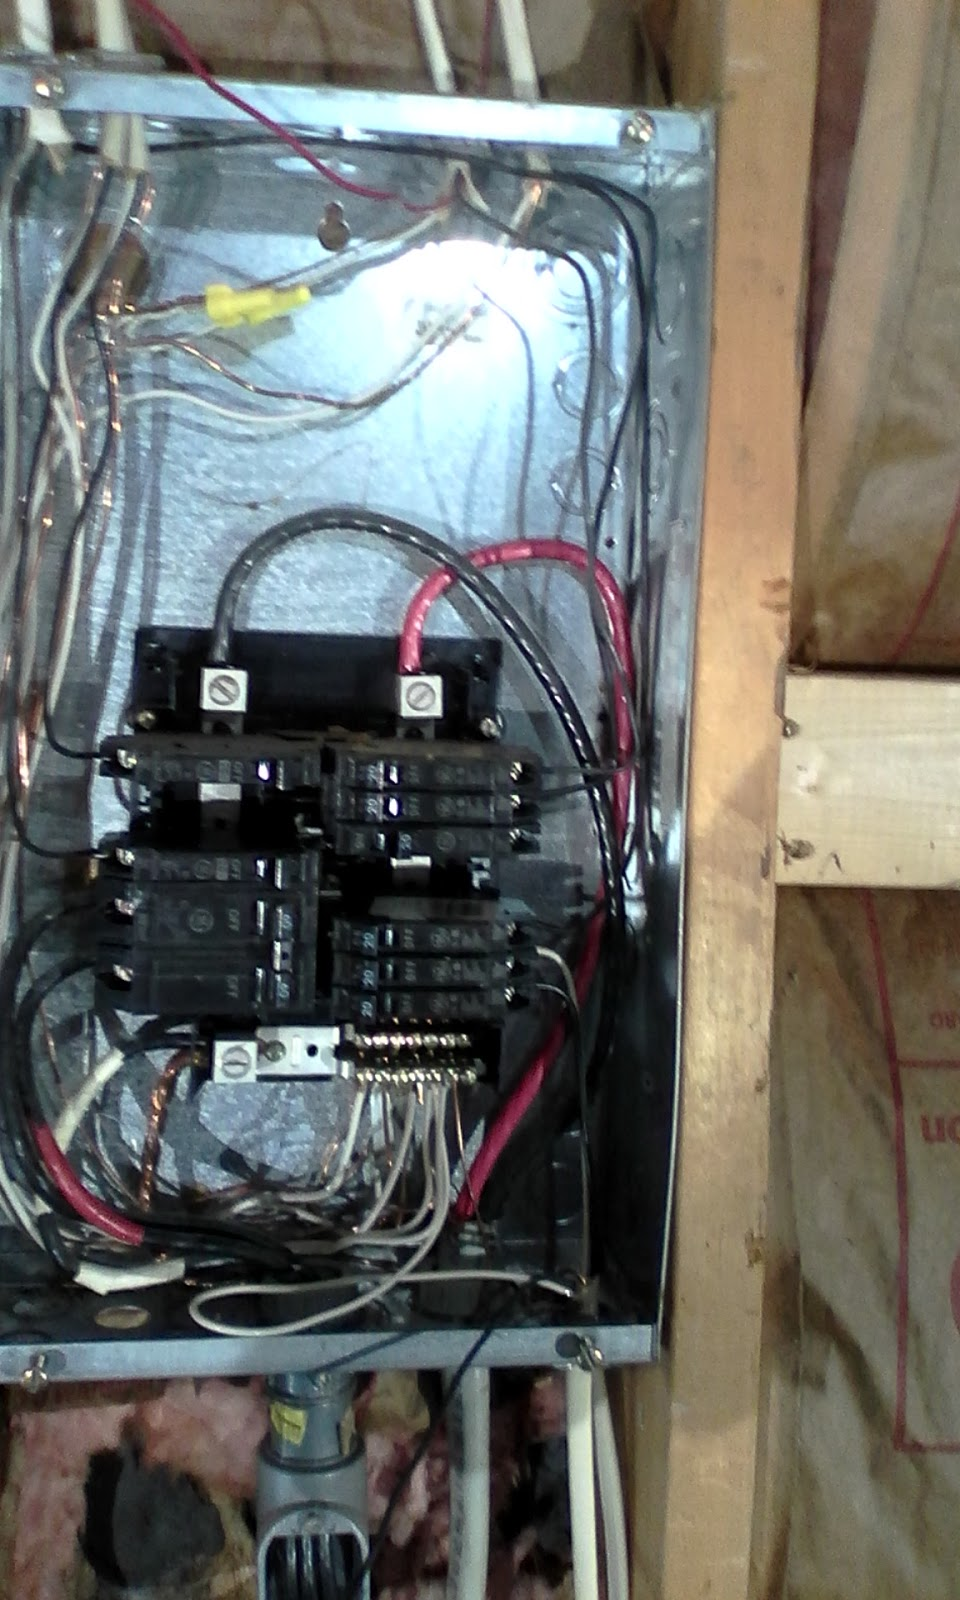 Pure Sinewave Inverter Battery Bank Plc Microgrid Electrical Energy Wiring Garage Sub Panel Hold On 1 More Subpanel Was Discovered In The Attached Feeding Power To That Area For Lighting Inside And Out Outlets Switching As Well